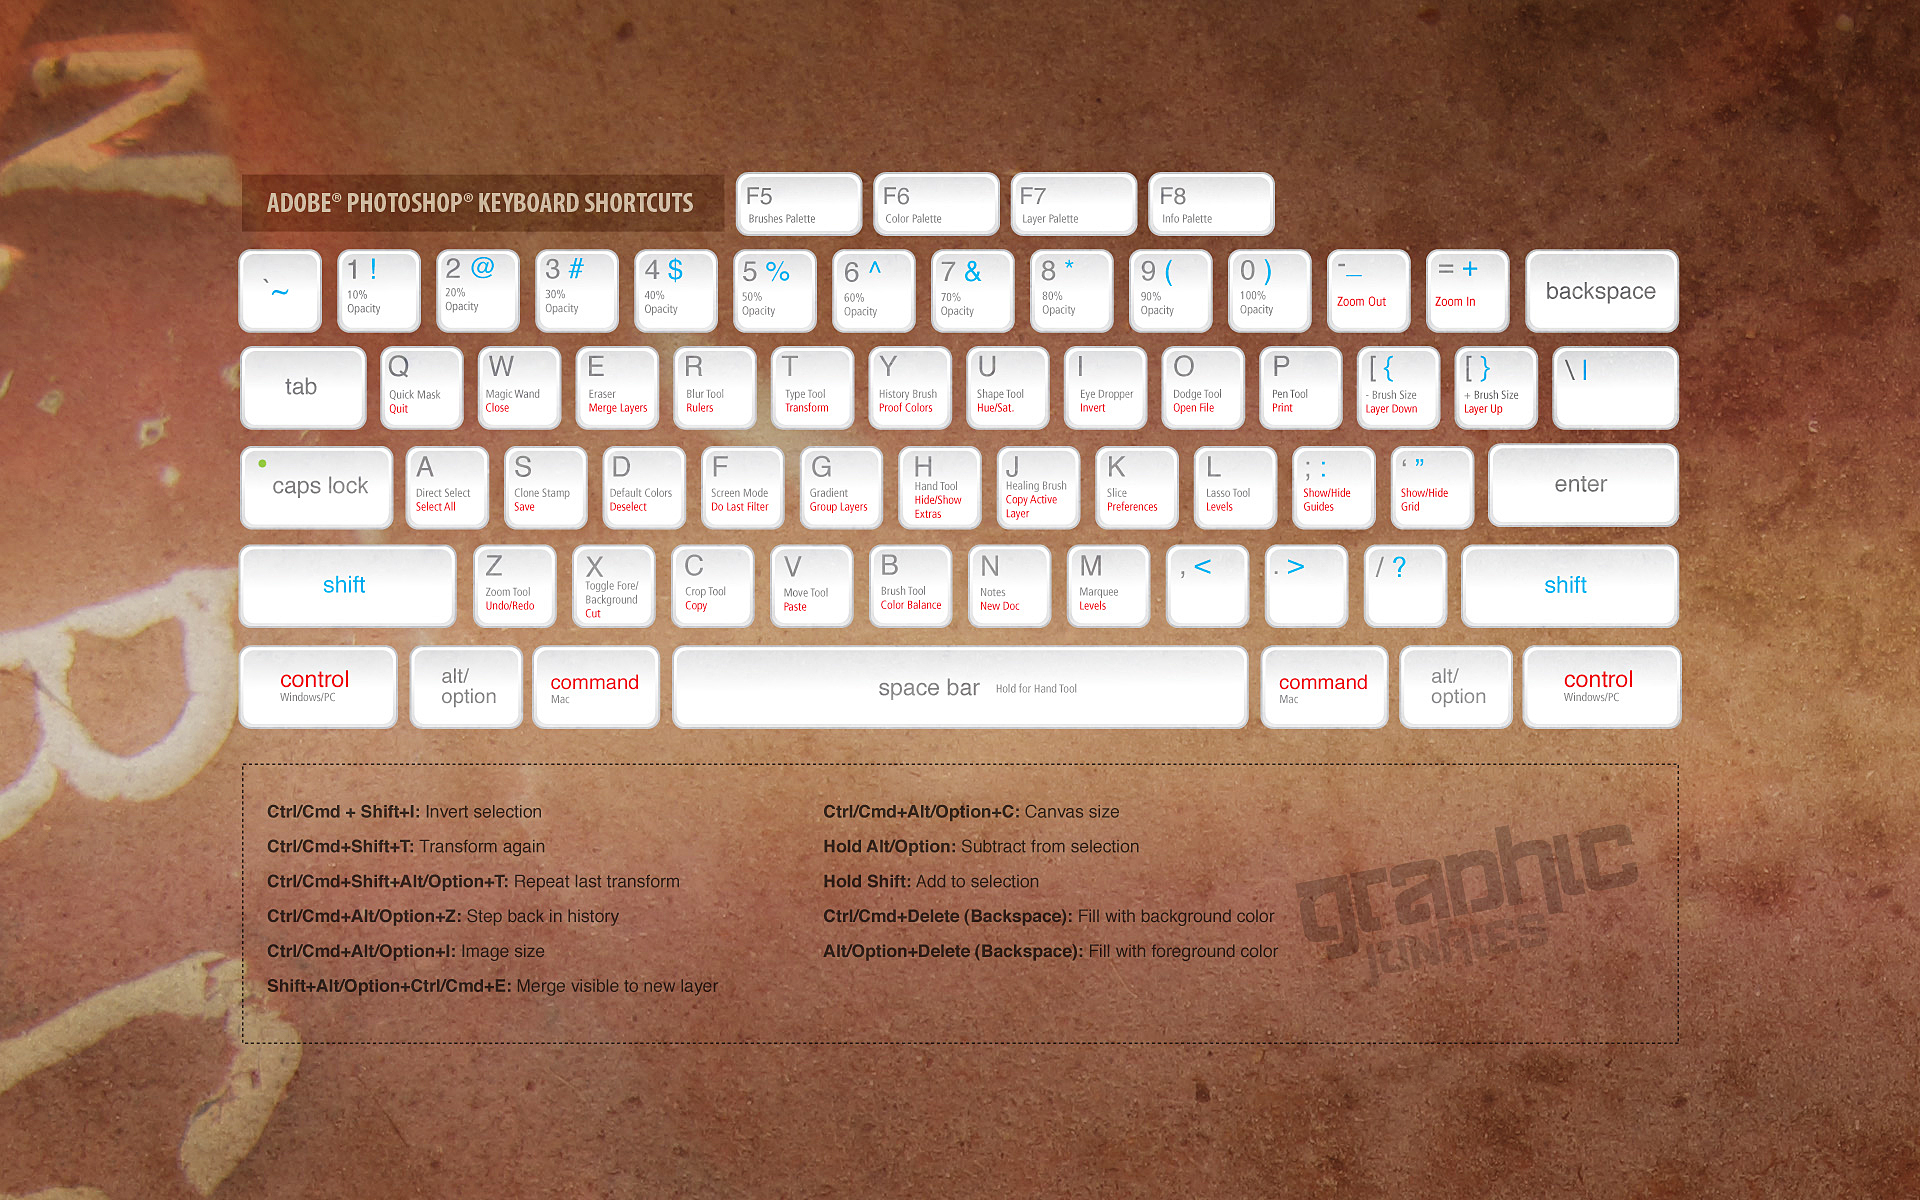 abode photoshop keyboard shortcuts keys diagram detailed poster canvas diy wall sticker home bar posters decoration gift [ 1920 x 1200 Pixel ]